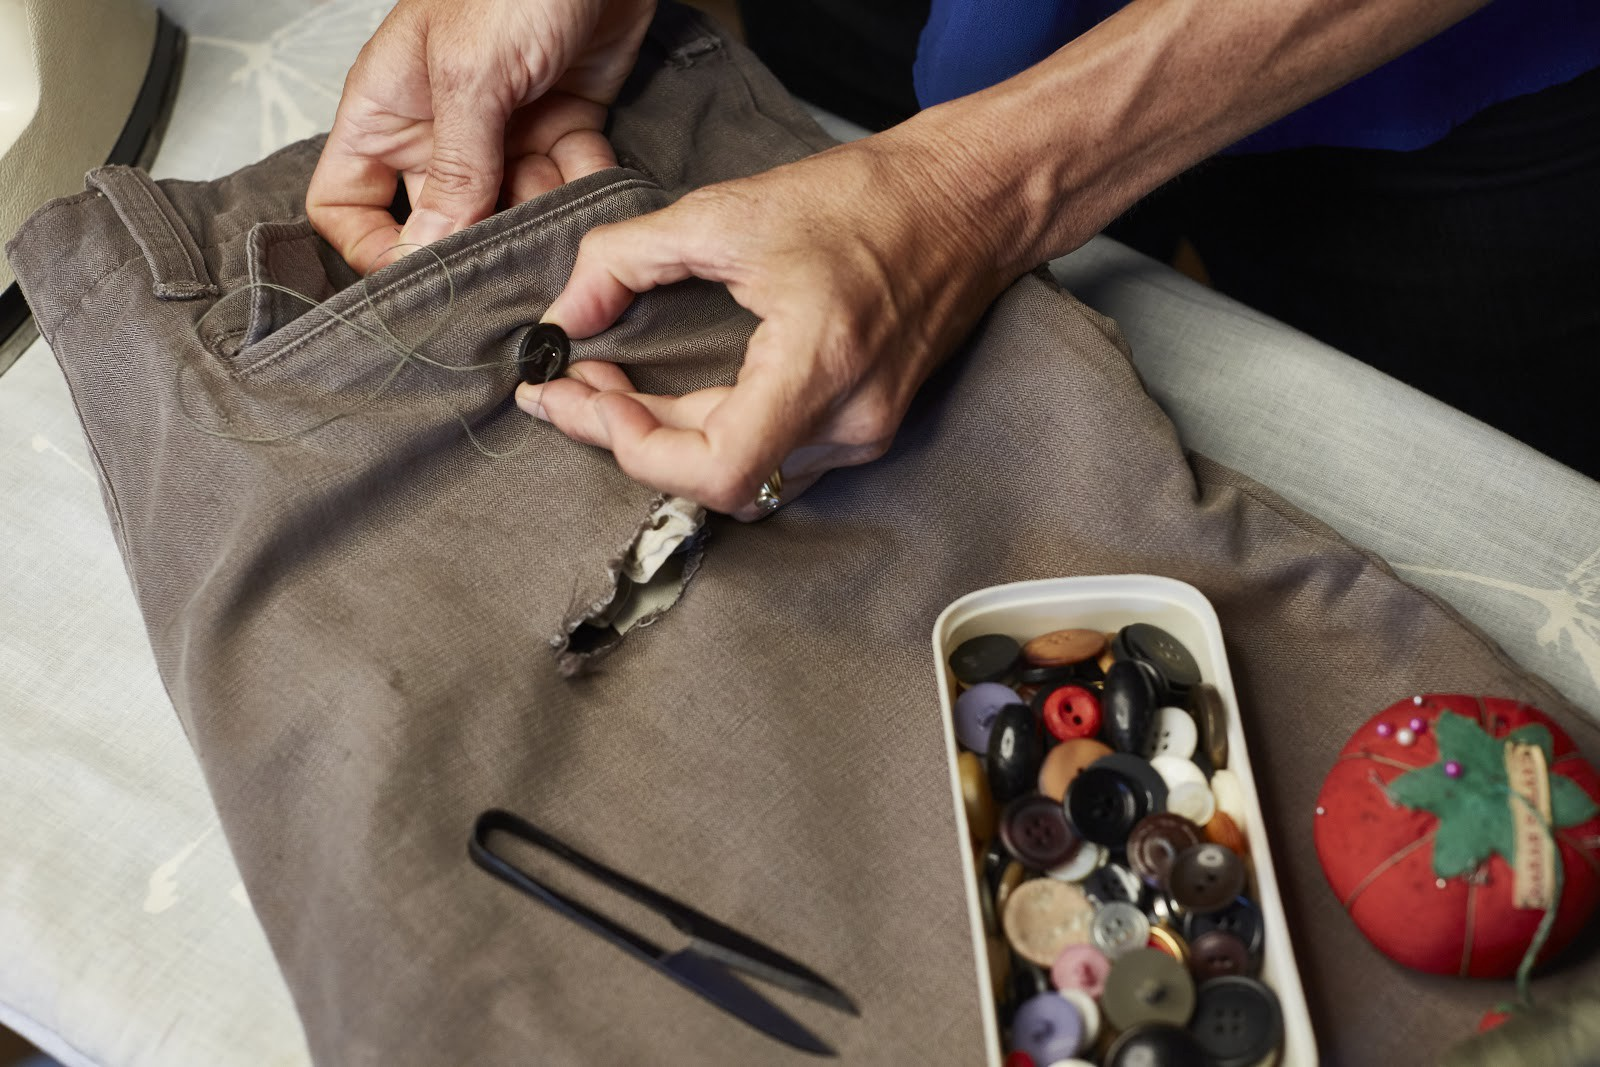 Closeup of someone using needle and thread to replace a button on the back pocket of a pair of pants.